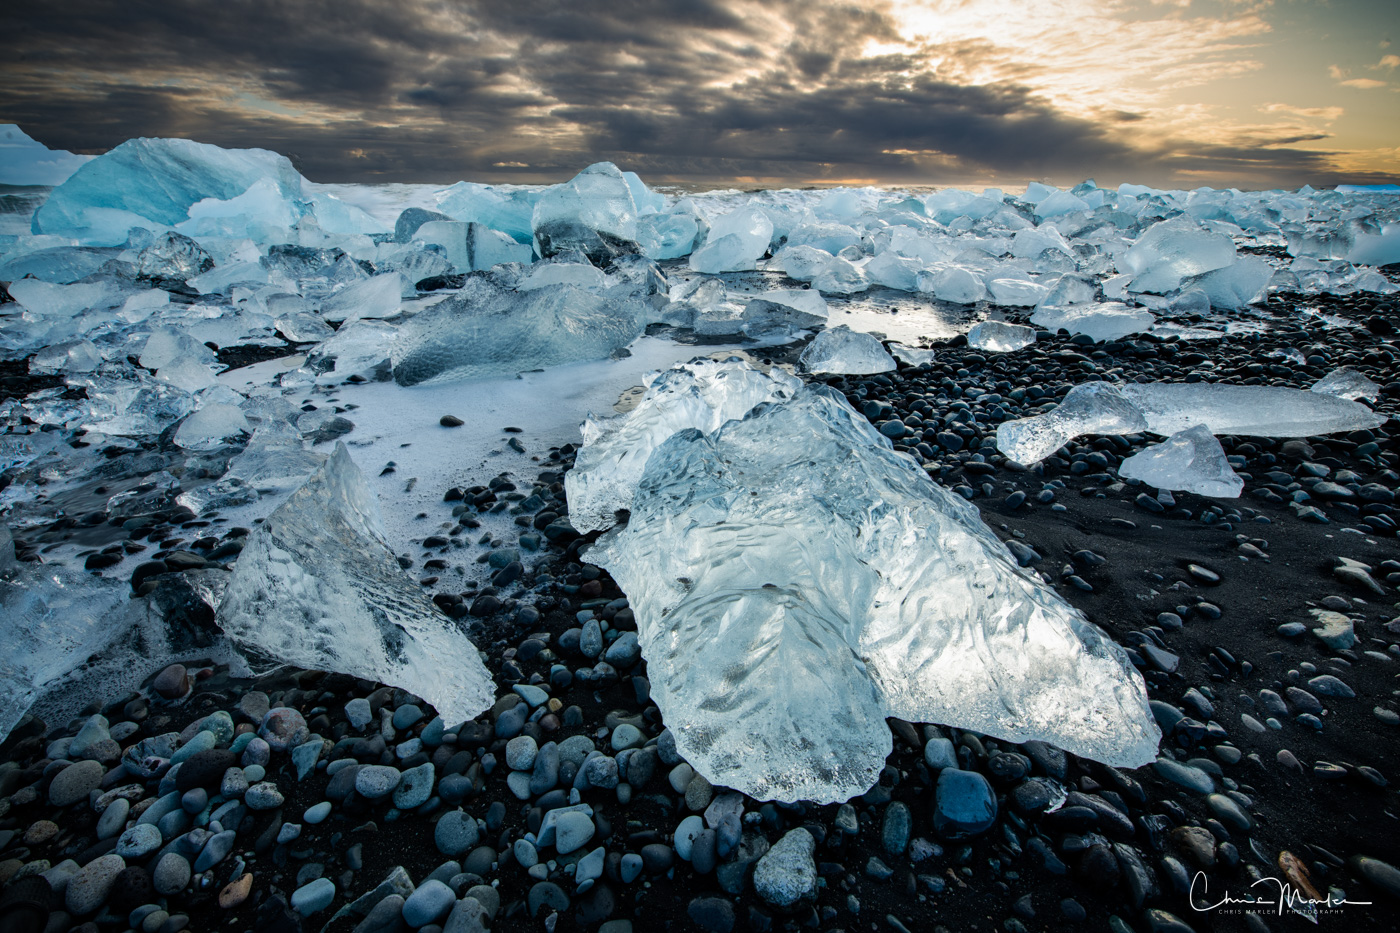 Icebergs littered Iceland's Diamond Beach for over a mile on this particular day.  Jokulsarlon Glacier Lagoon was providing an...